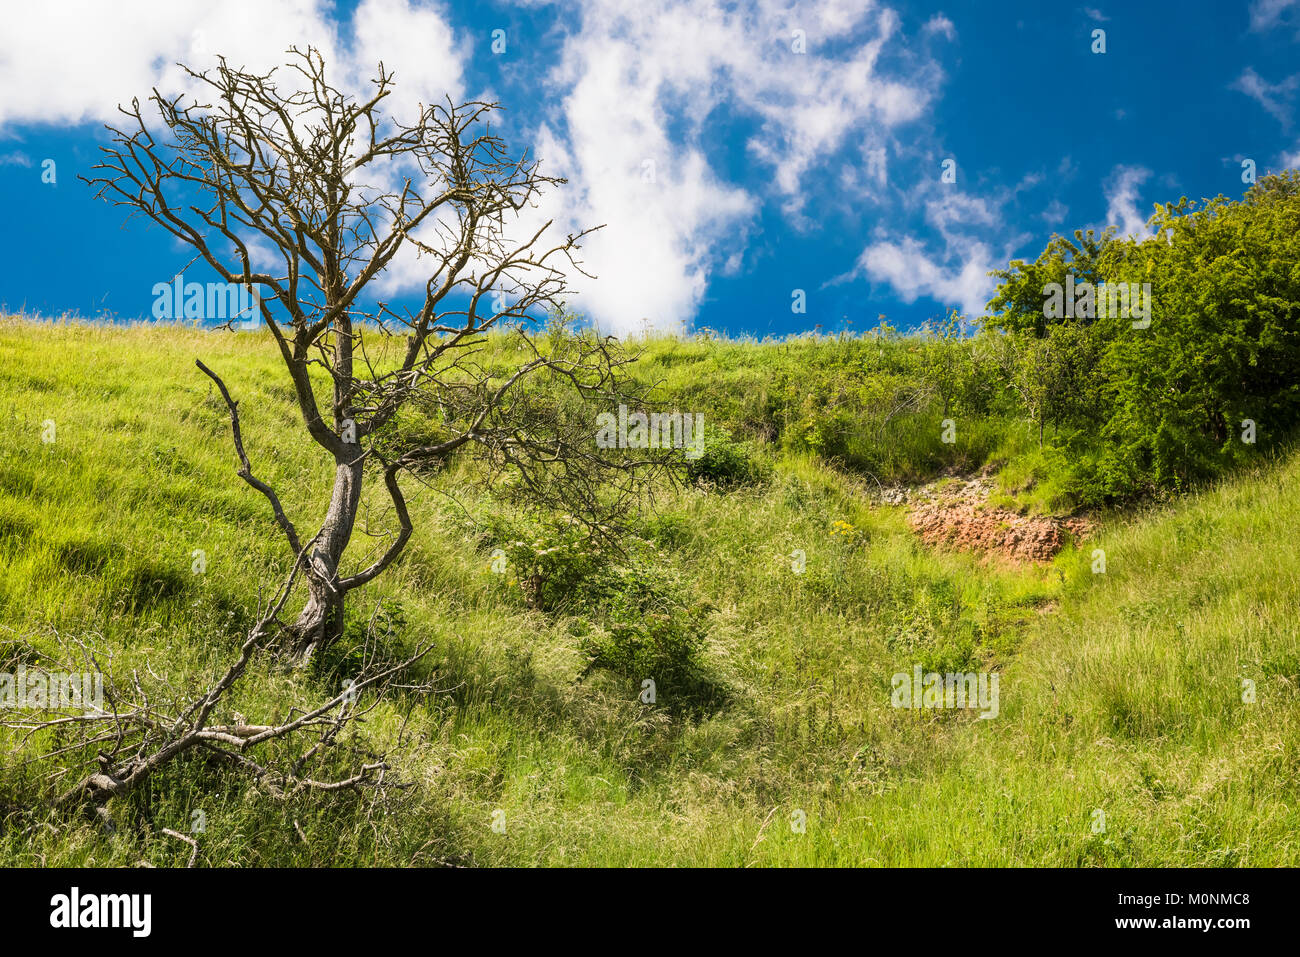 Calcareous grassland of Red Hill Nature Reserve, Lincolnshire, England, on a sunny summer day with a blue sky and - Stock Image